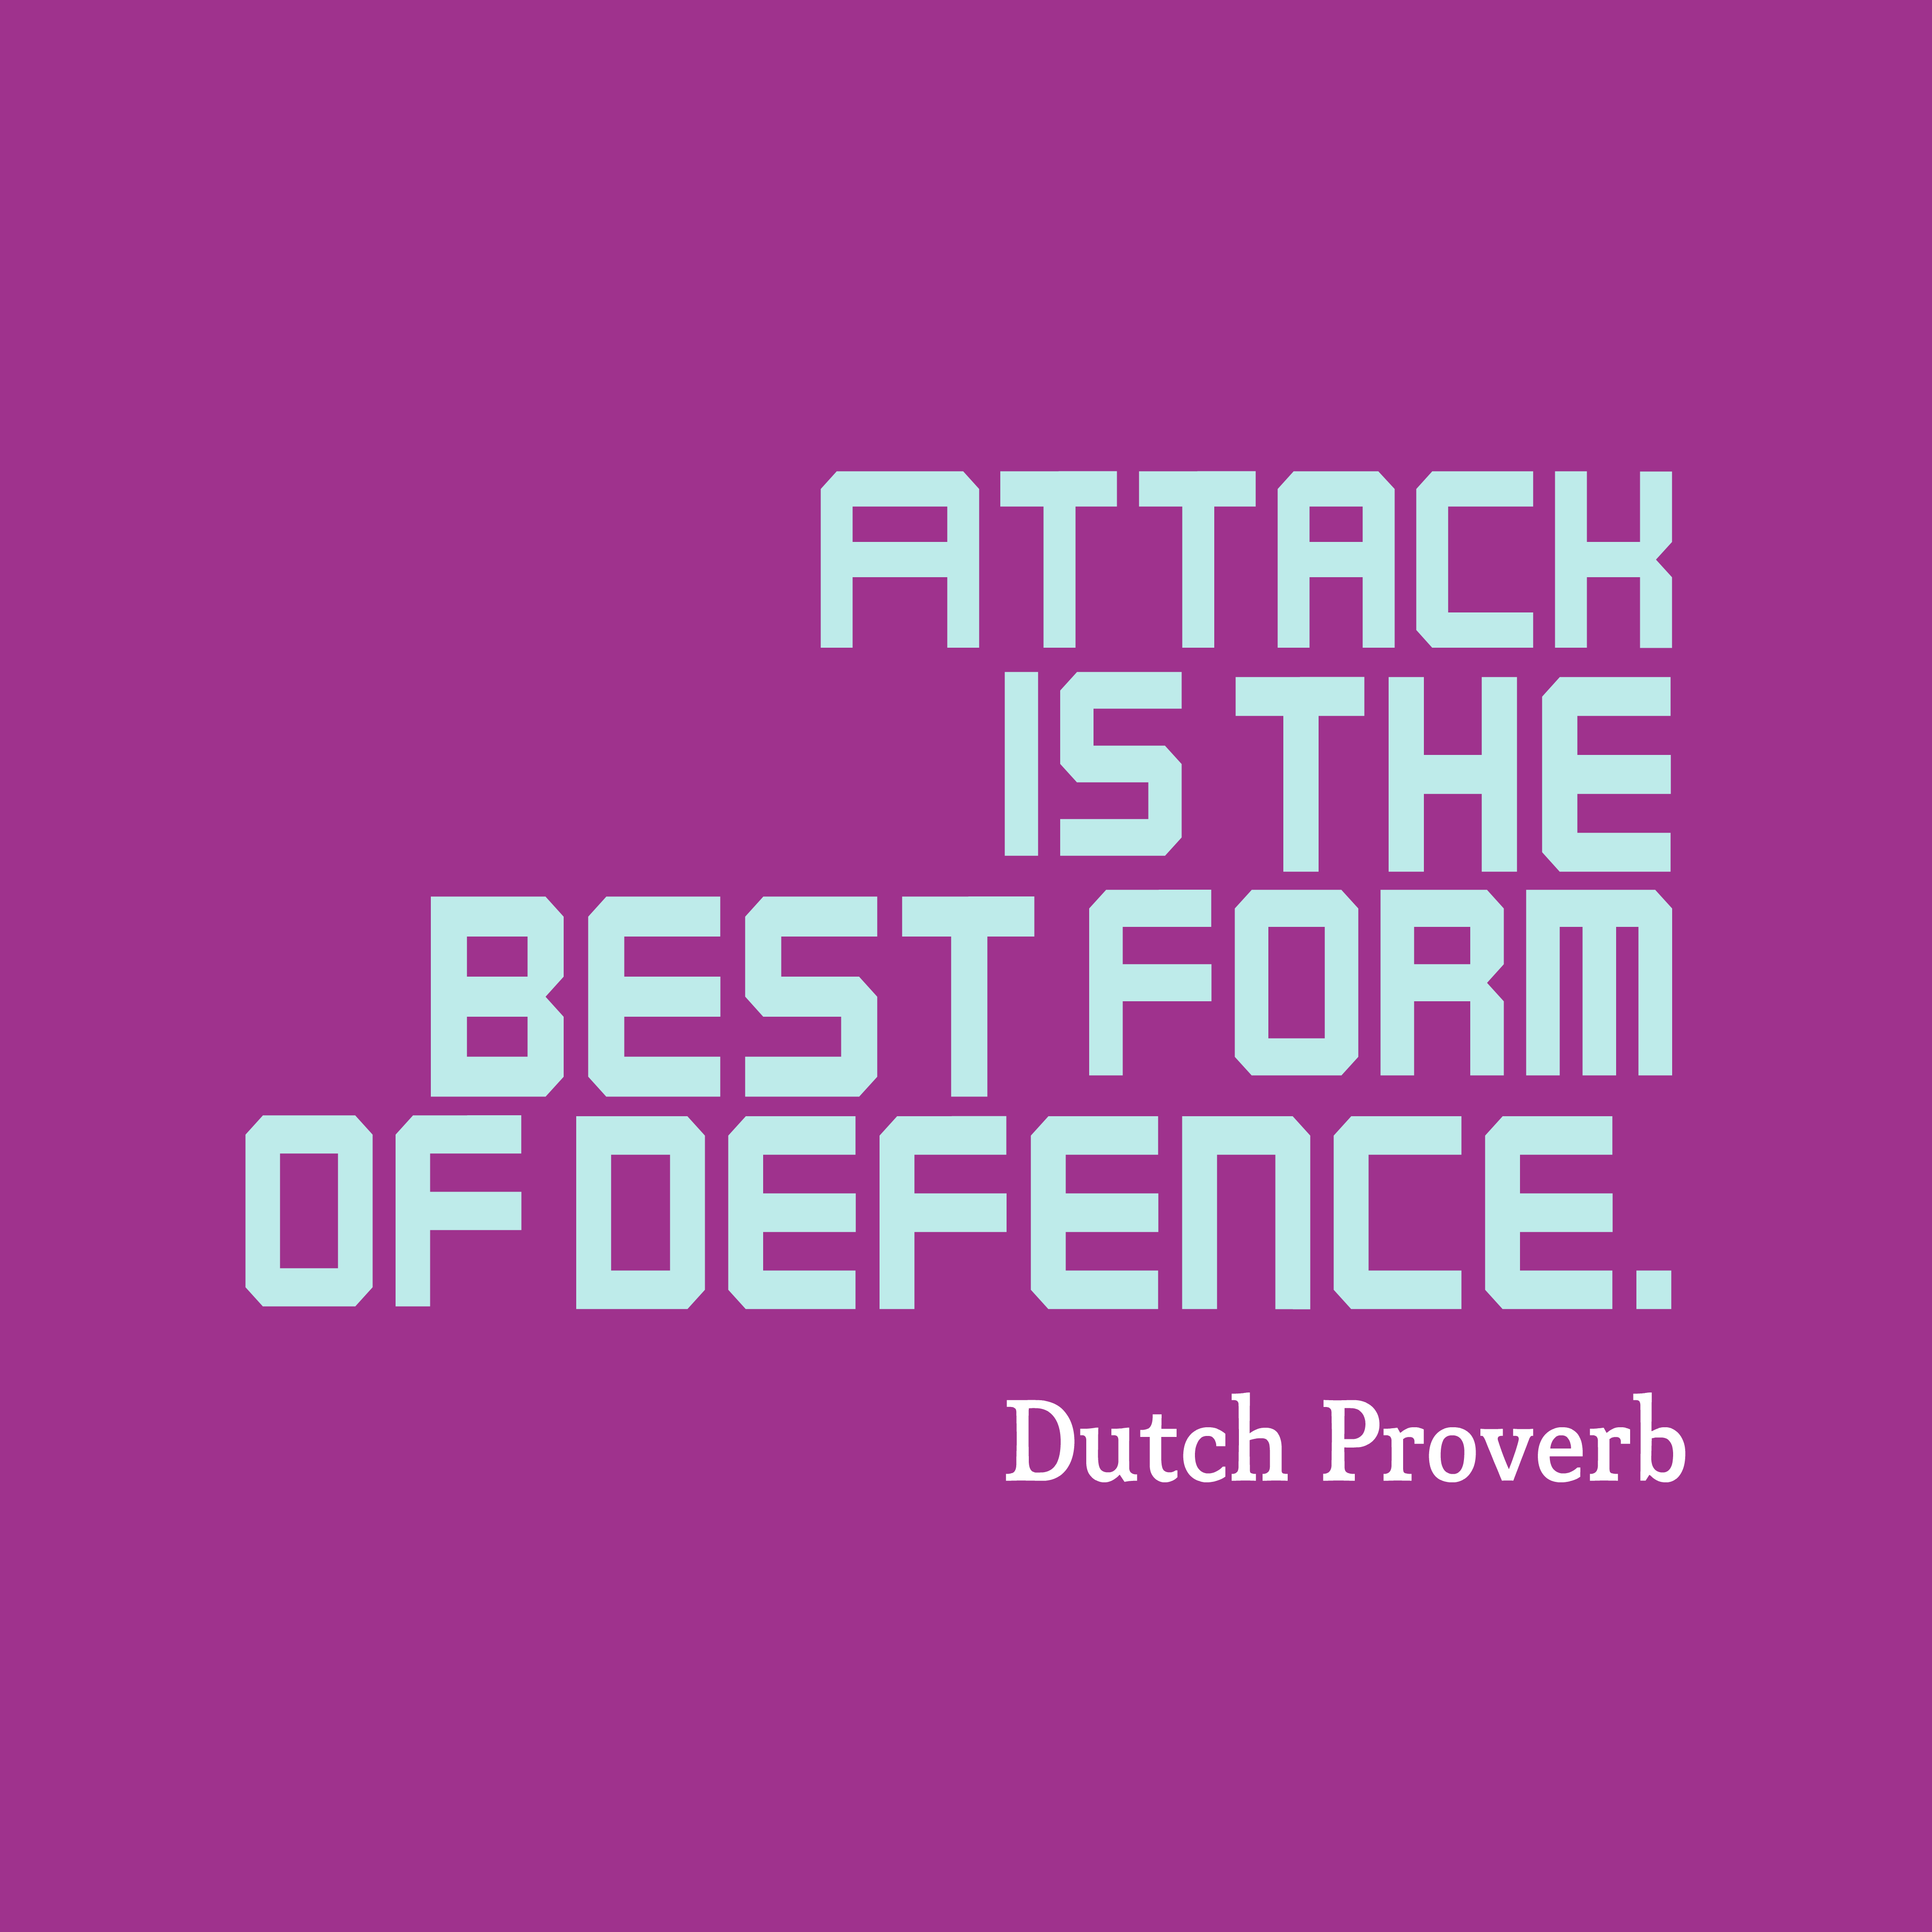 download high resolution quotes picture maker from dutch